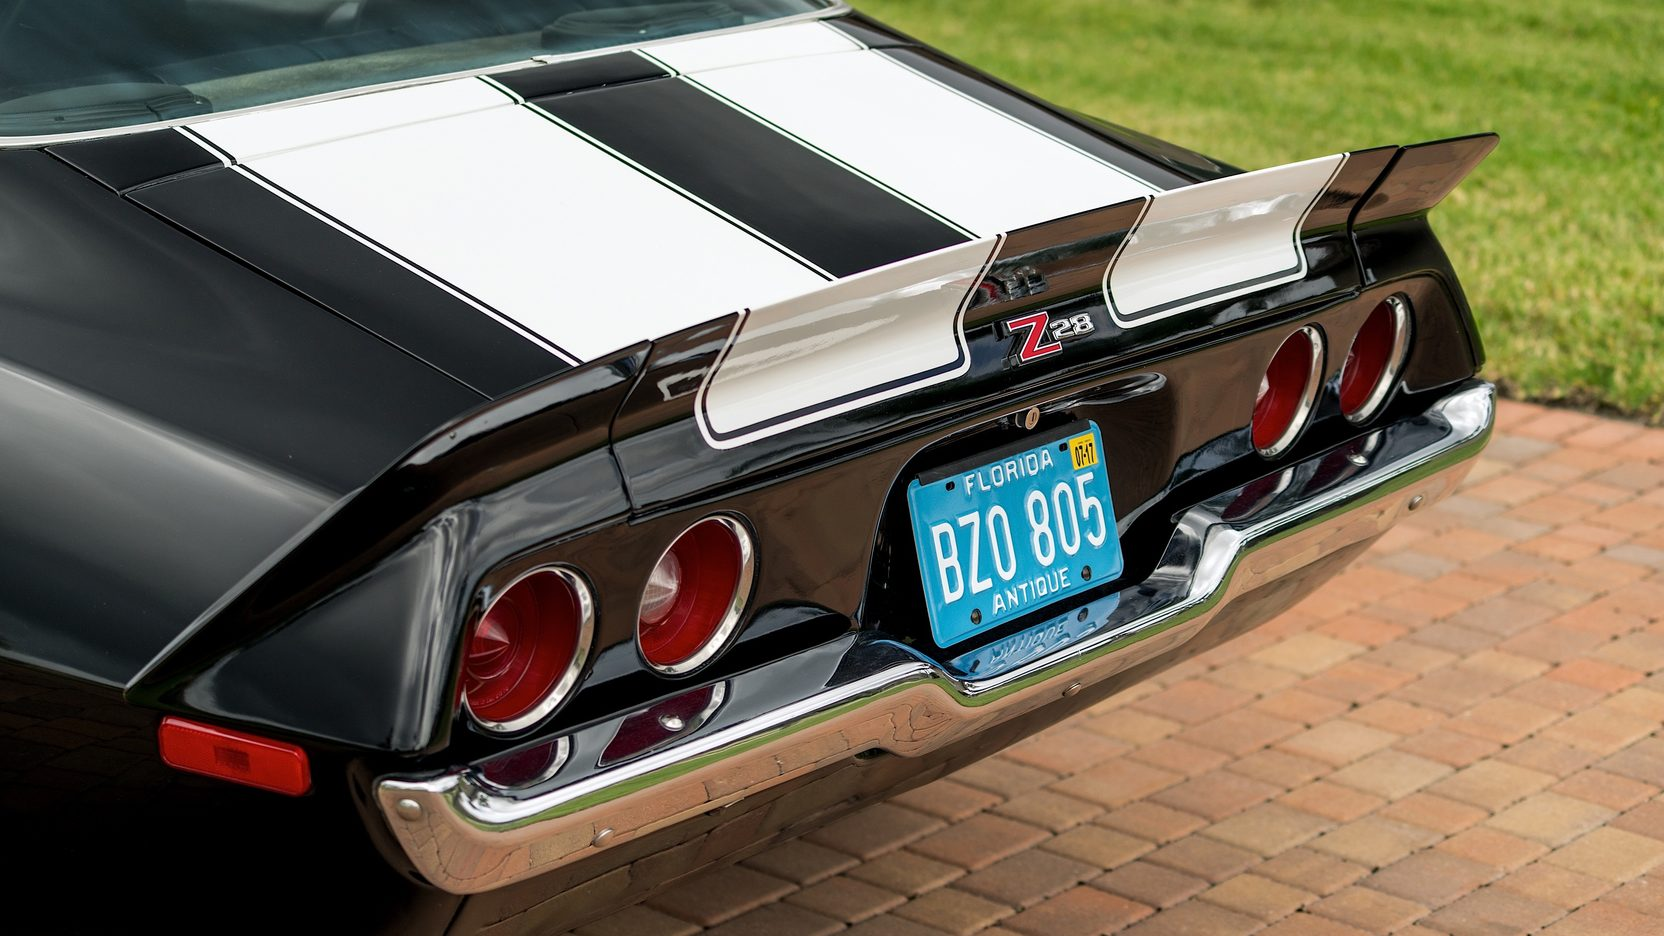 1973 Chevrolet Camaro Z28 rear